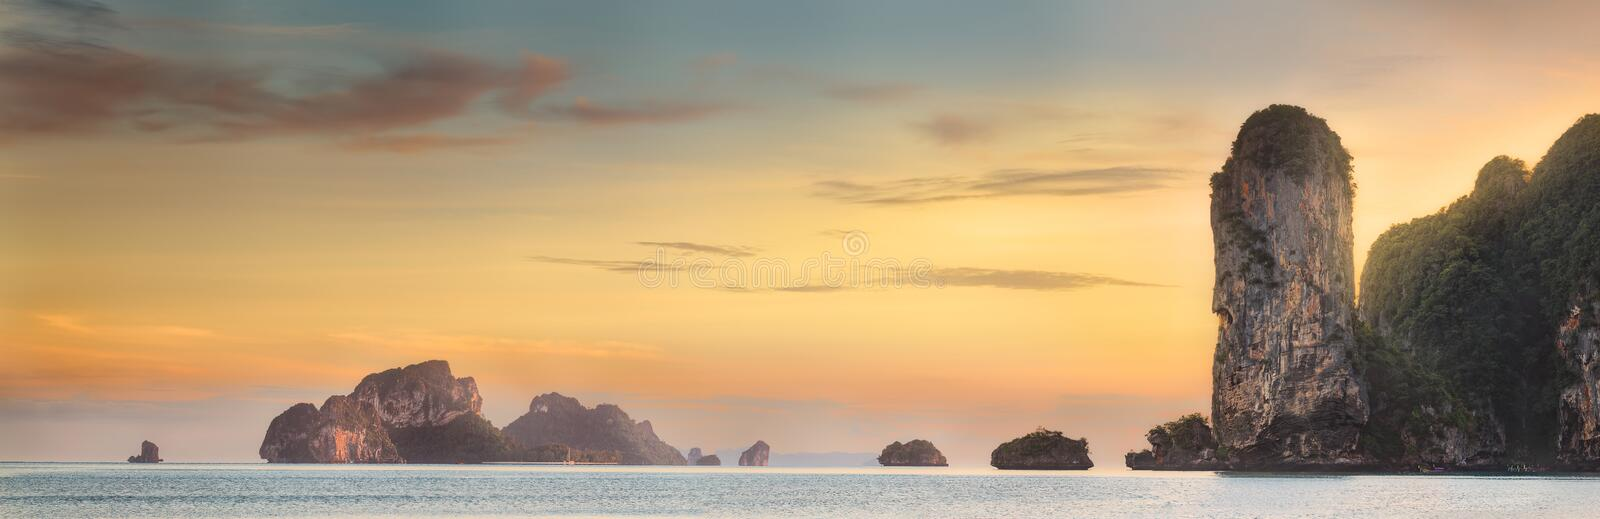 Travel vacation background royalty free stock photography